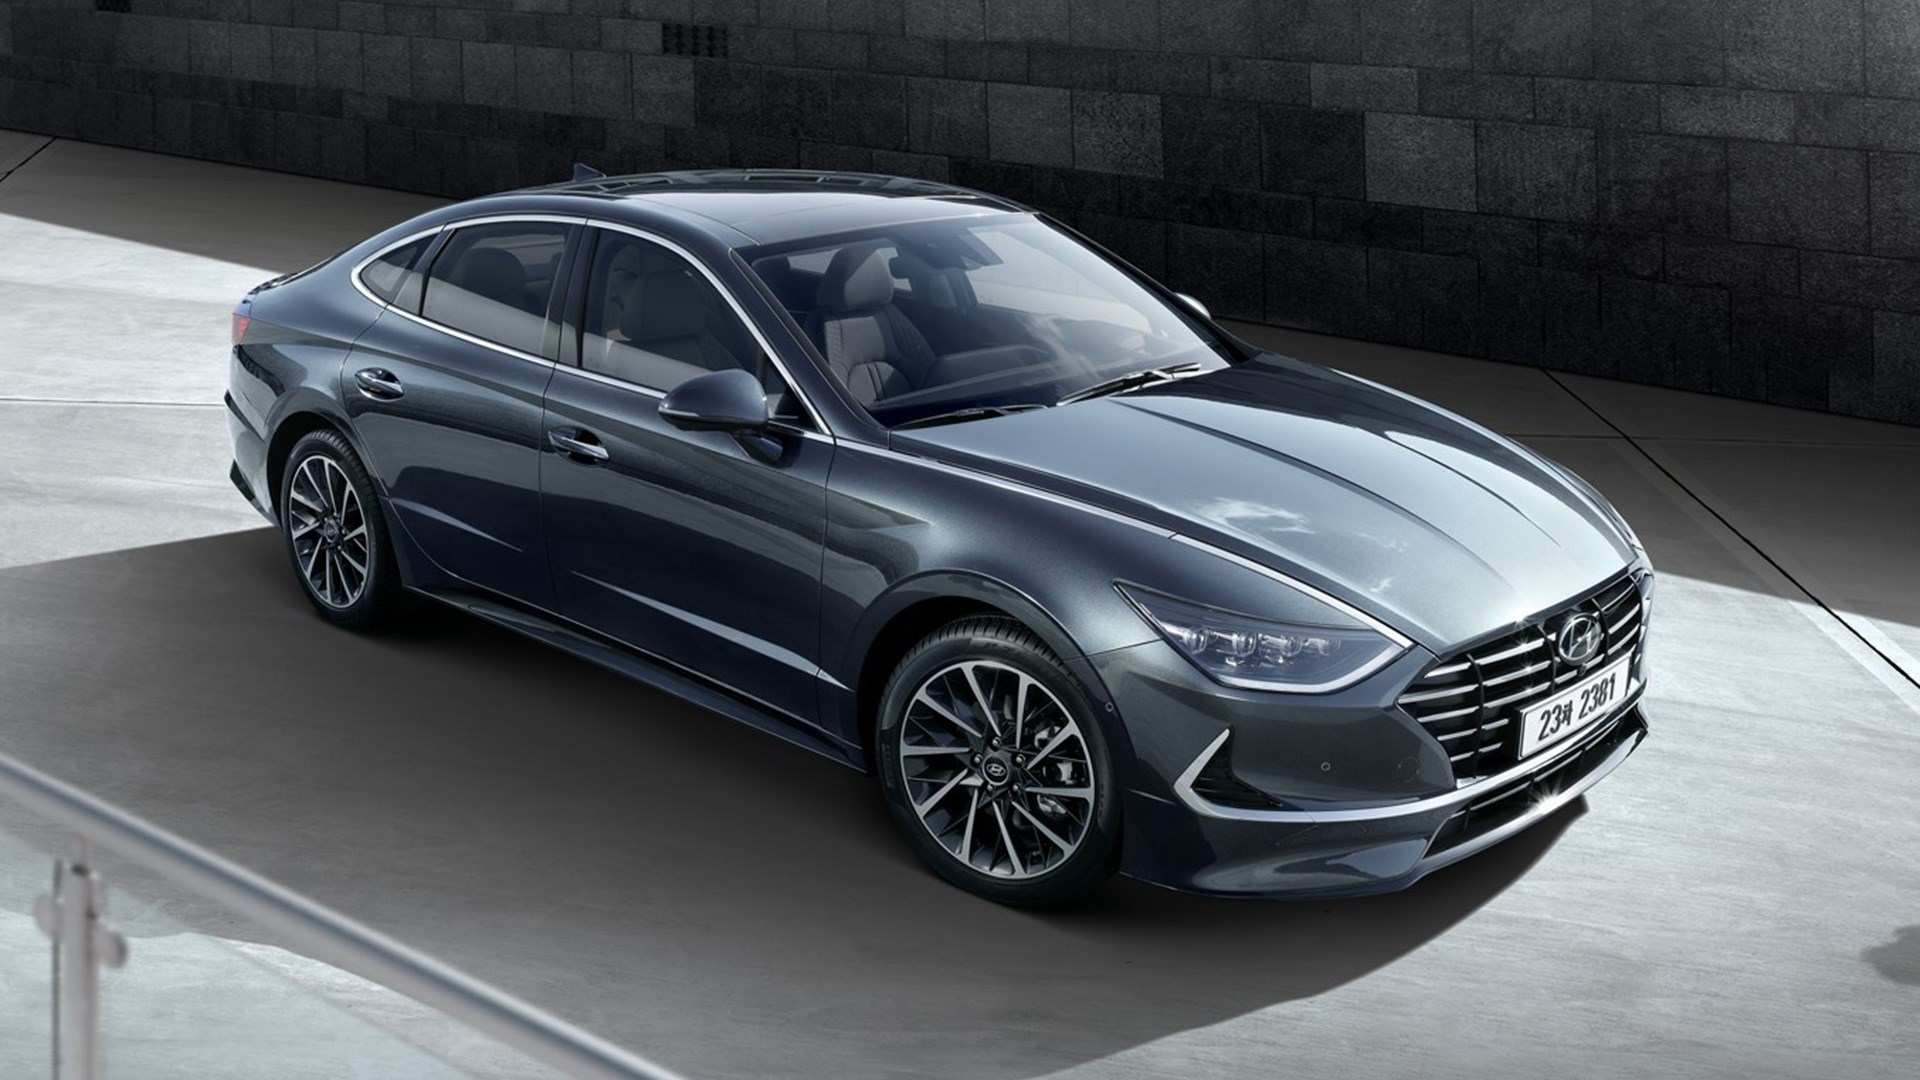 93 Gallery of When Will The 2020 Hyundai Sonata Be Available Spesification with When Will The 2020 Hyundai Sonata Be Available